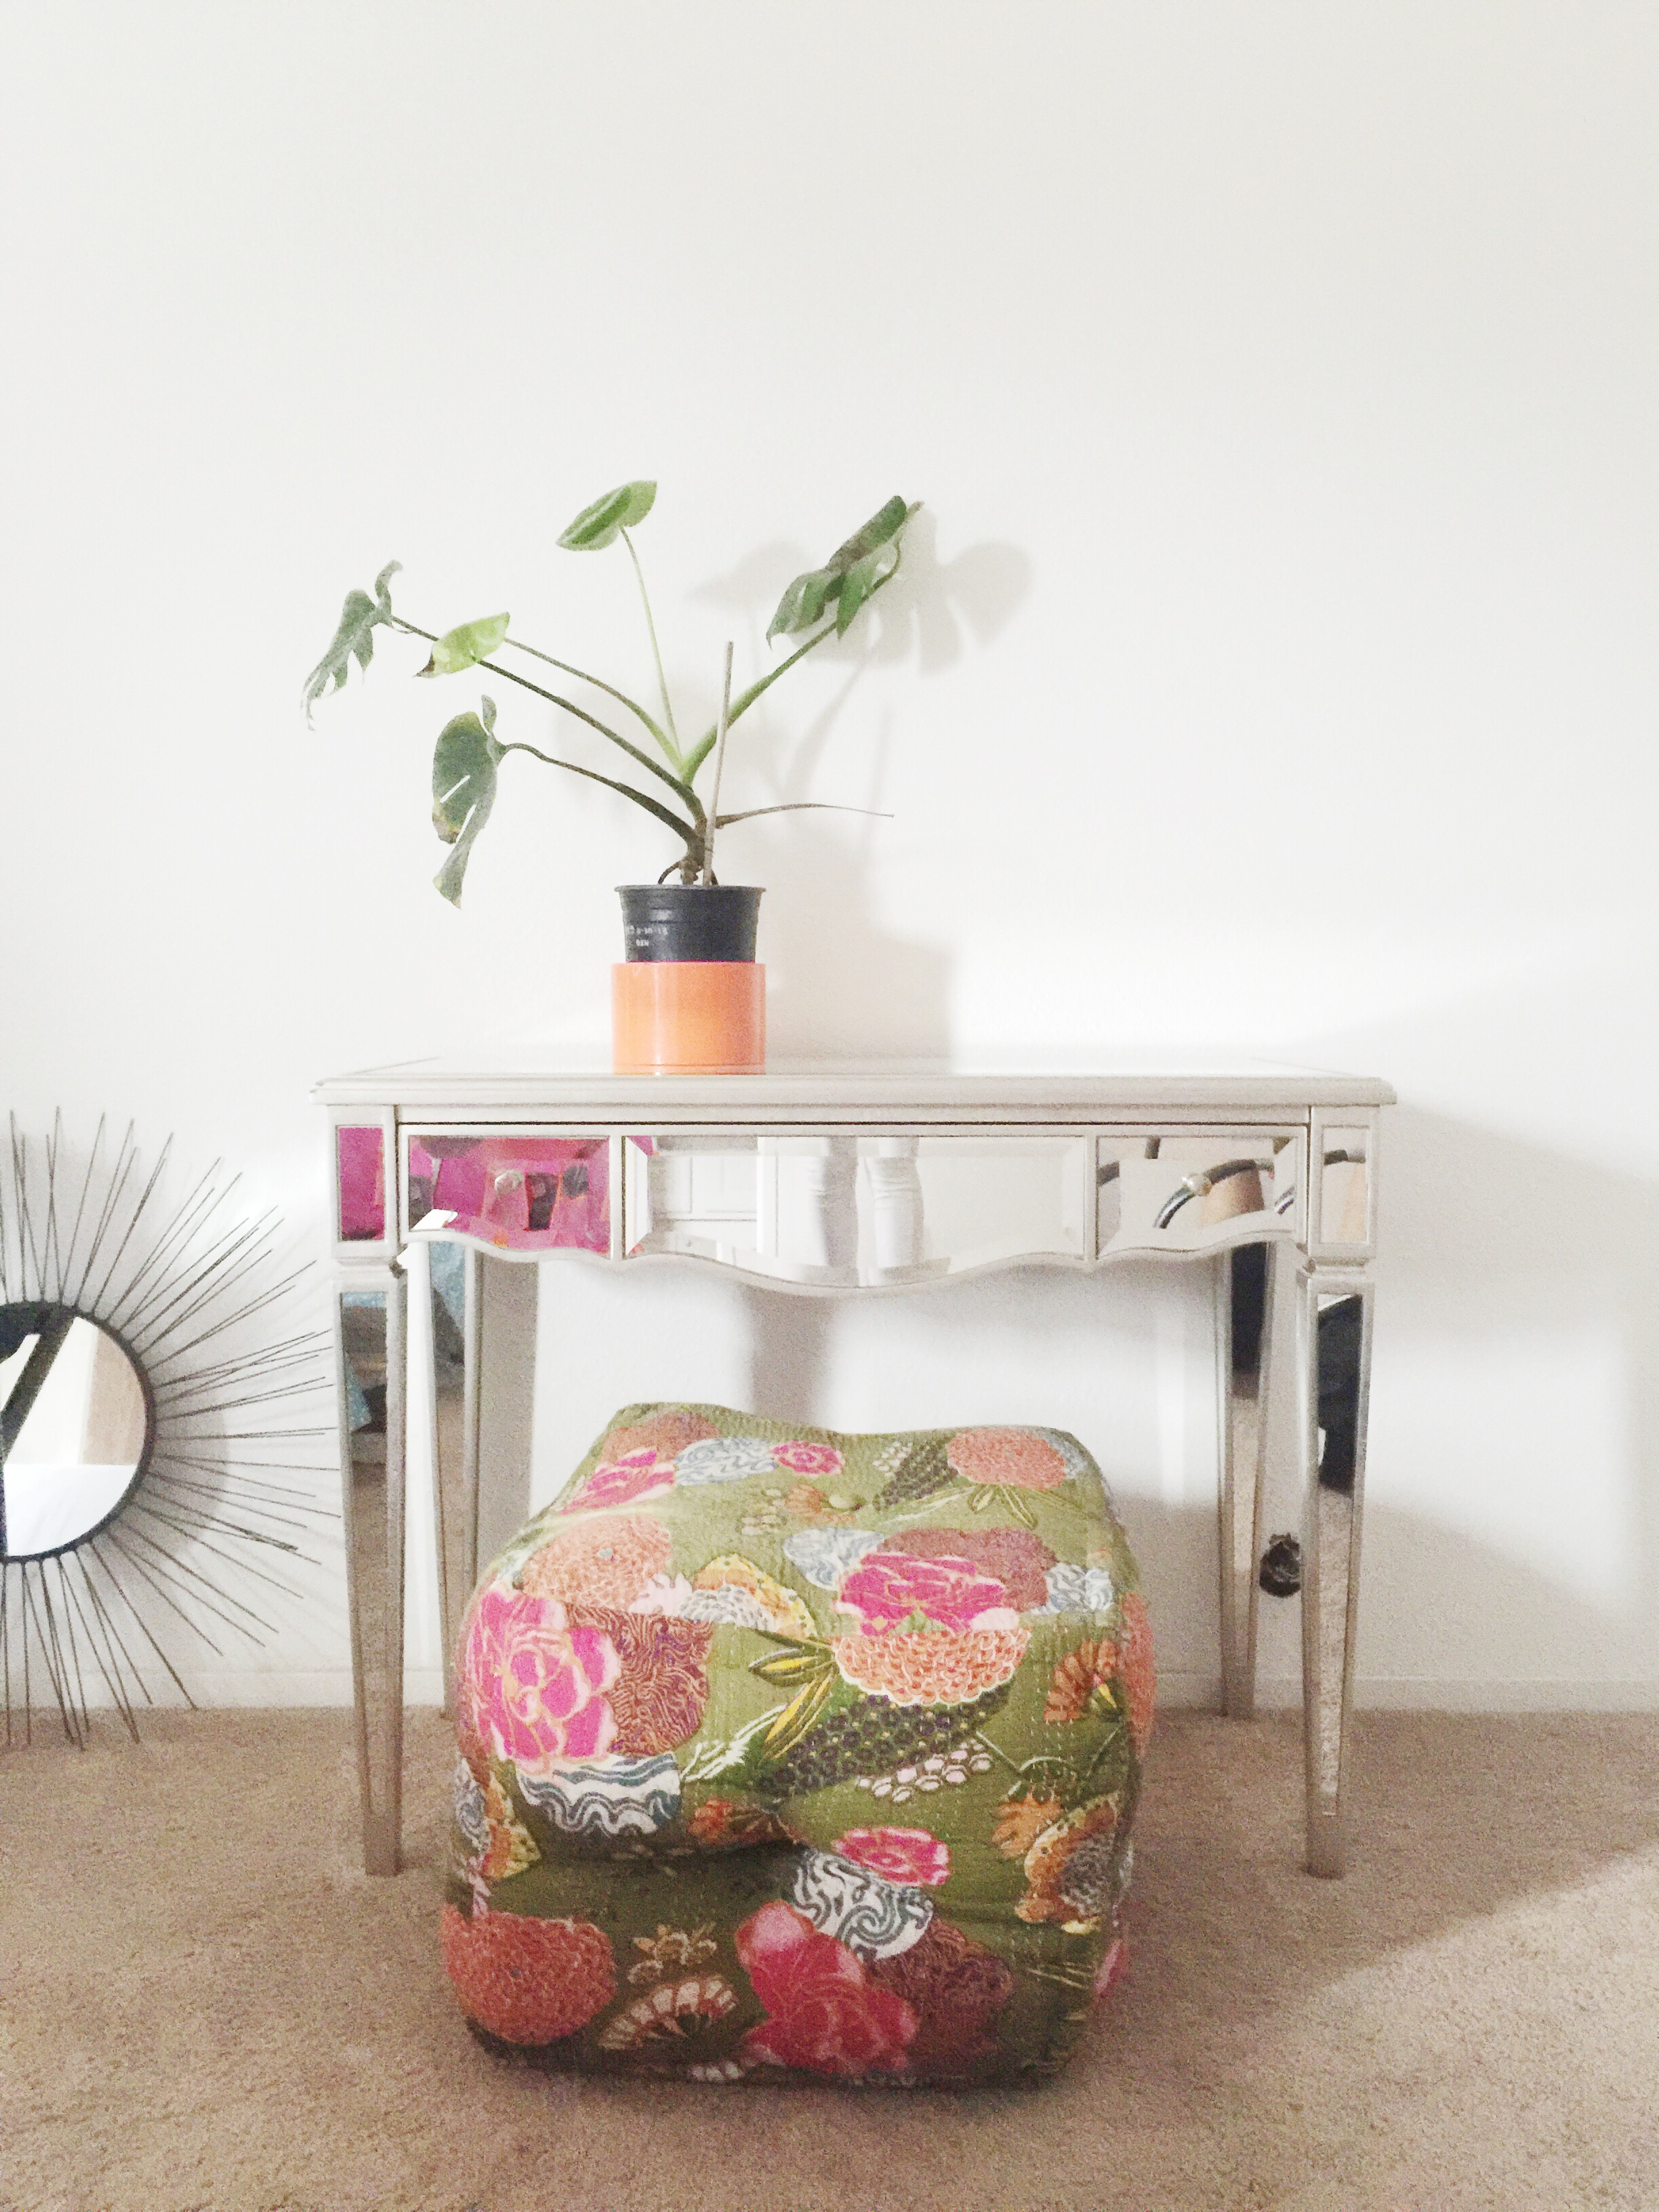 Impeccable vignettes: clean lines and a wink of kitsch....